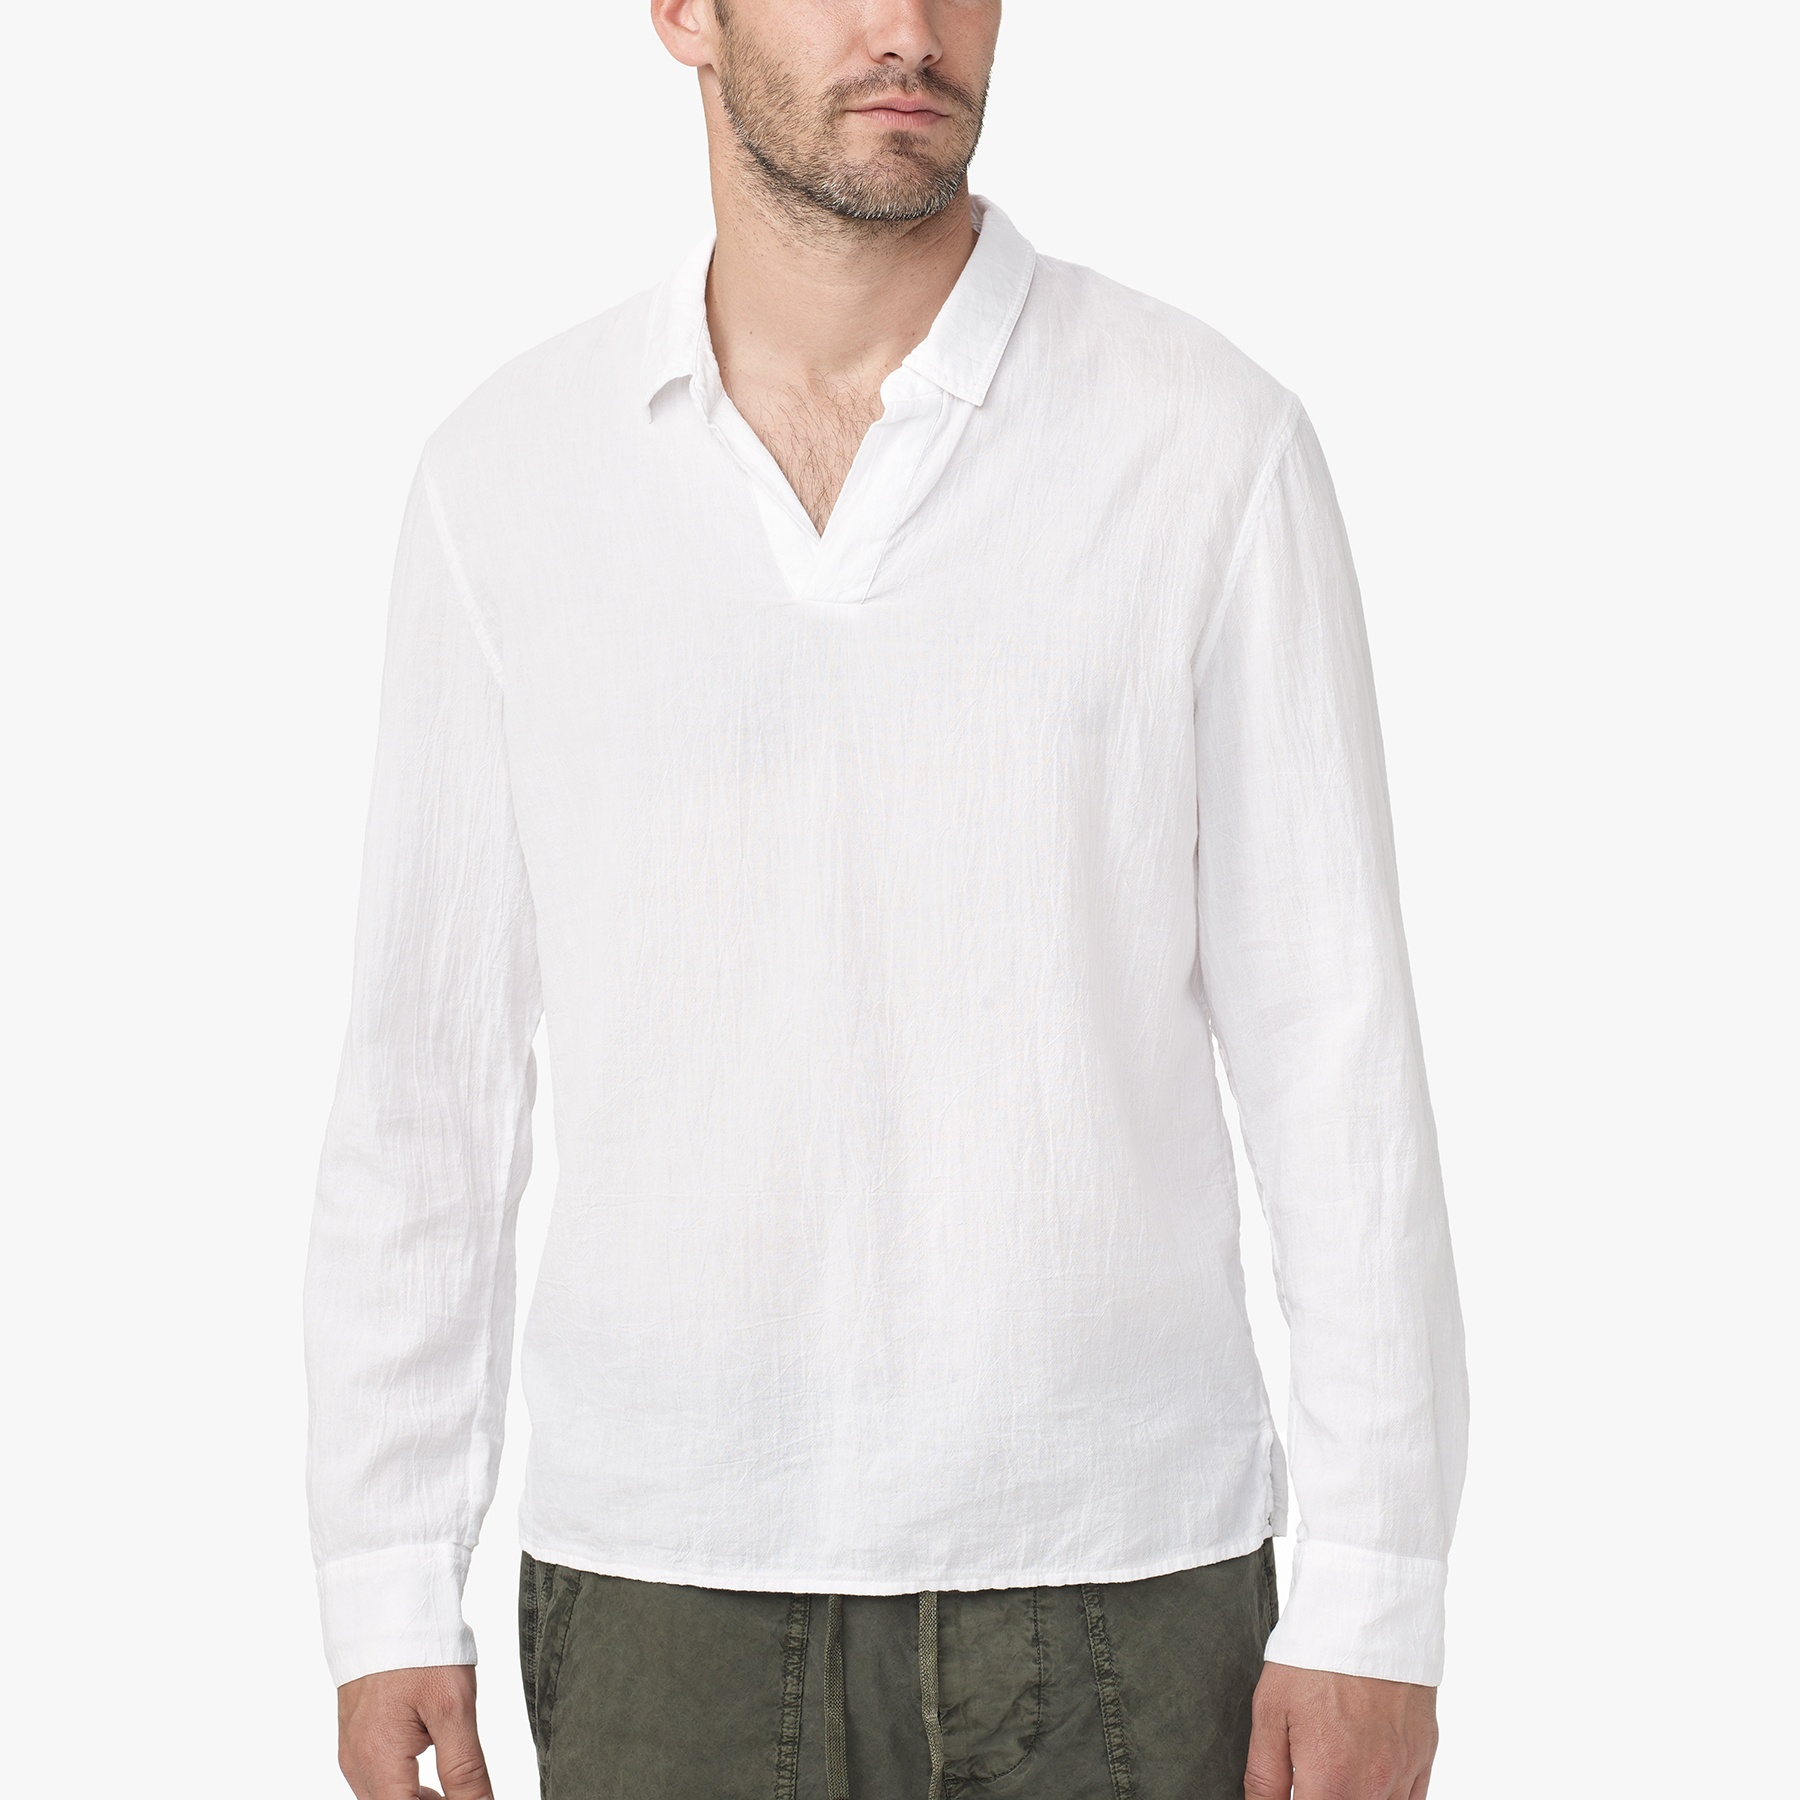 Shop white cotton spandex shirt at Neiman Marcus, where you will find free shipping on the latest in fashion from top designers. Gucci Long-Sleeve Button-Down Shirt w/ Tiger Collar, White, Size Details Gucci shirt in stretch poplin. Rounded spread collar with wrap around tiger motif. Mother-of-pearl button front.